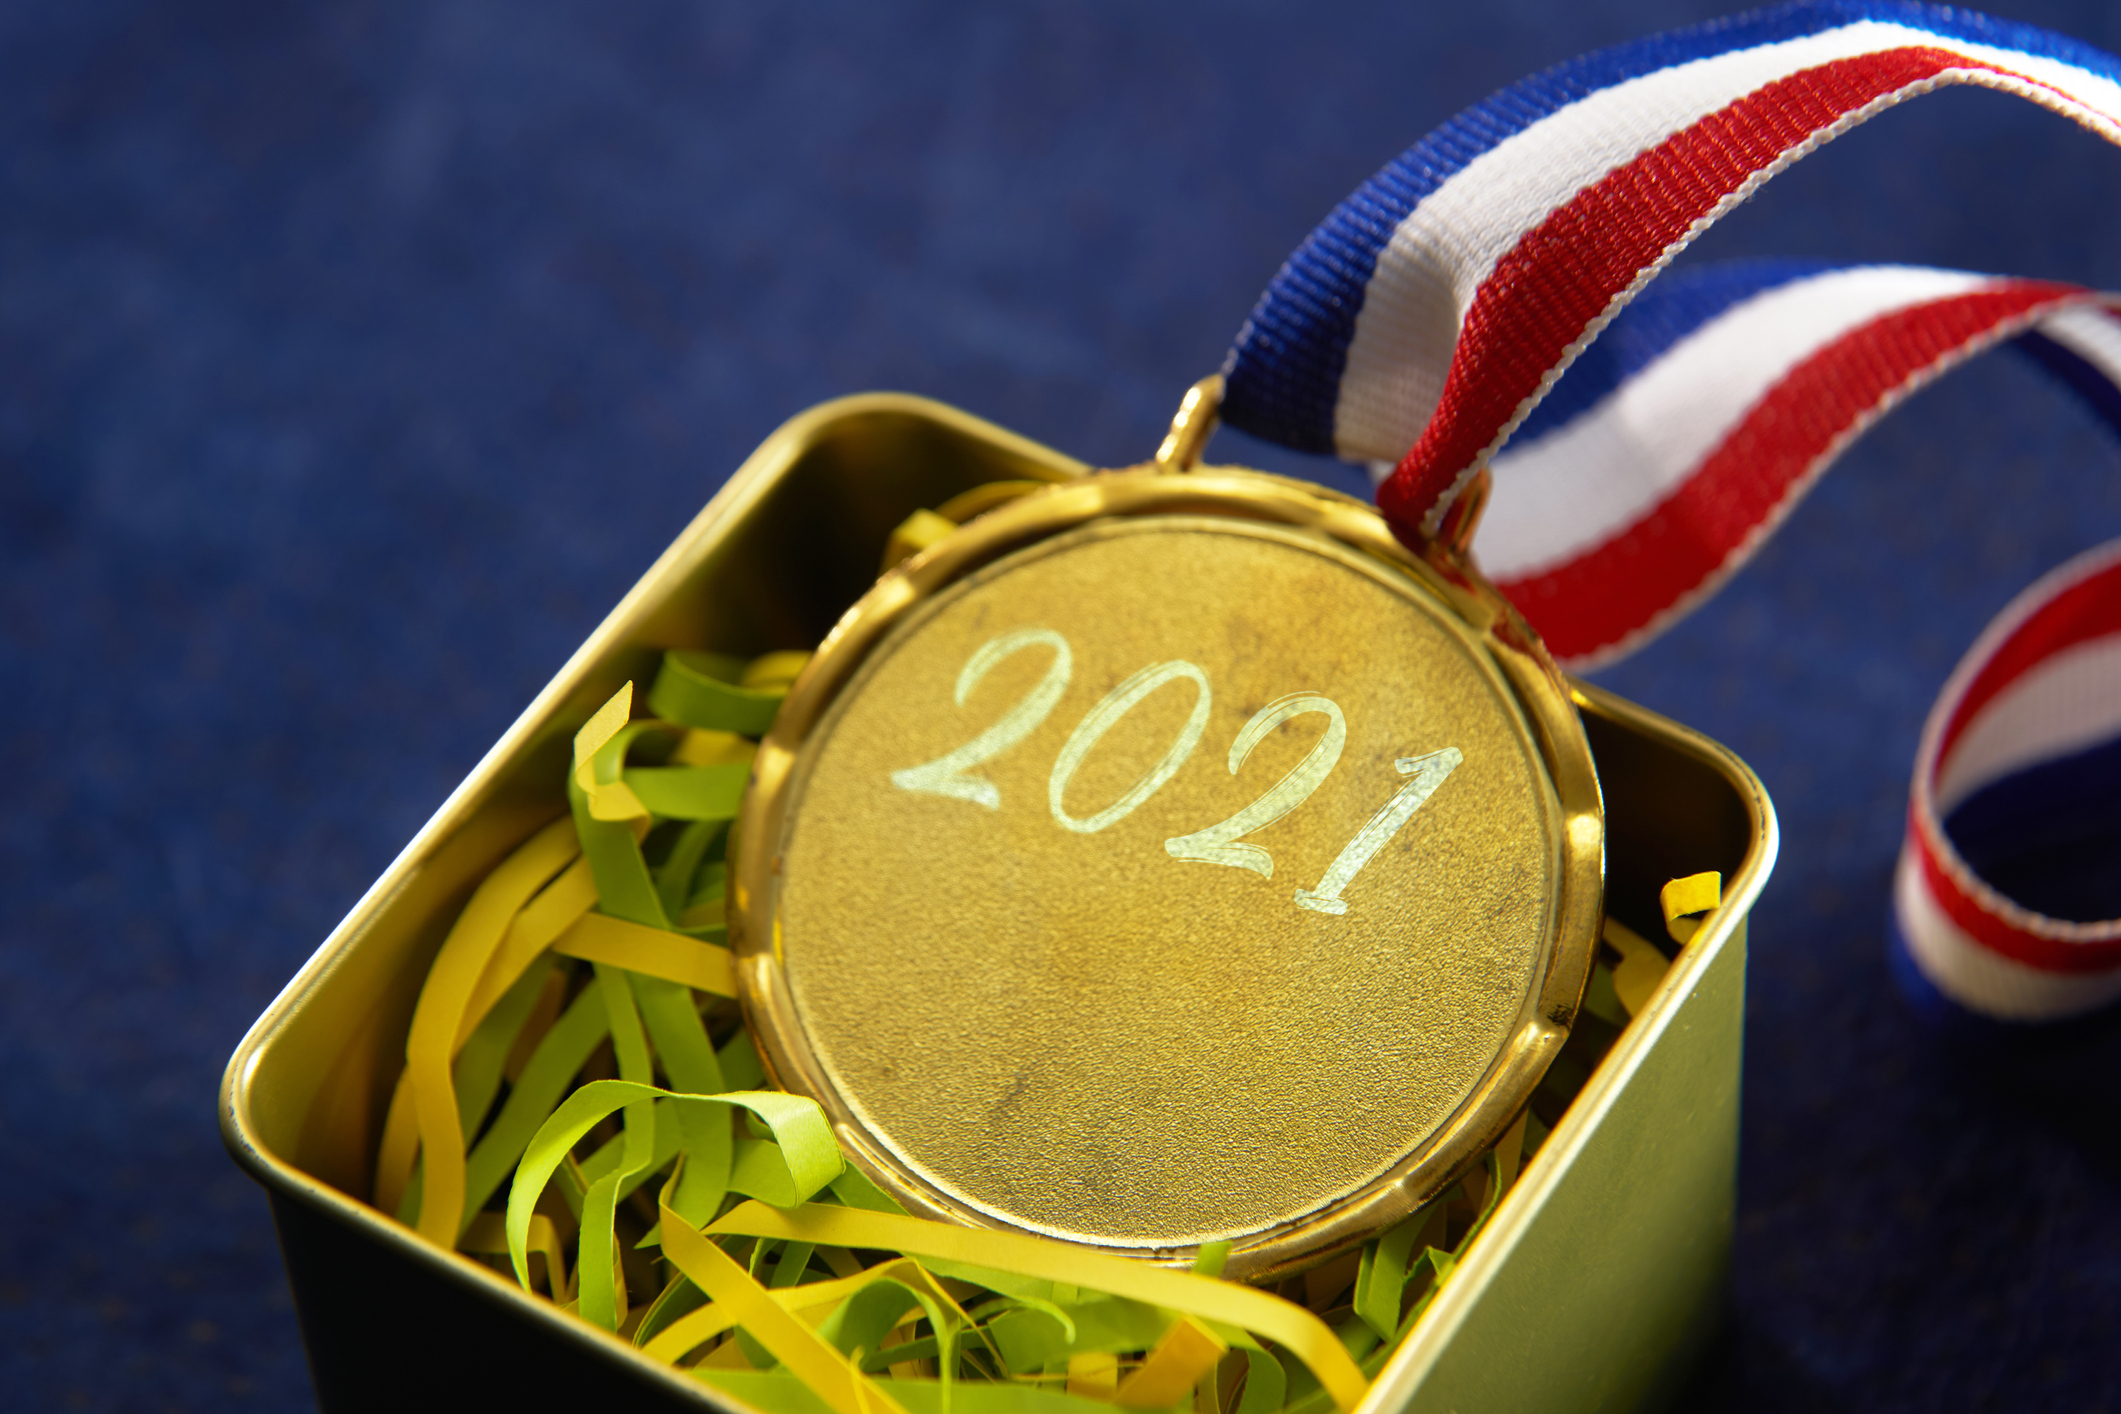 Gold medal with